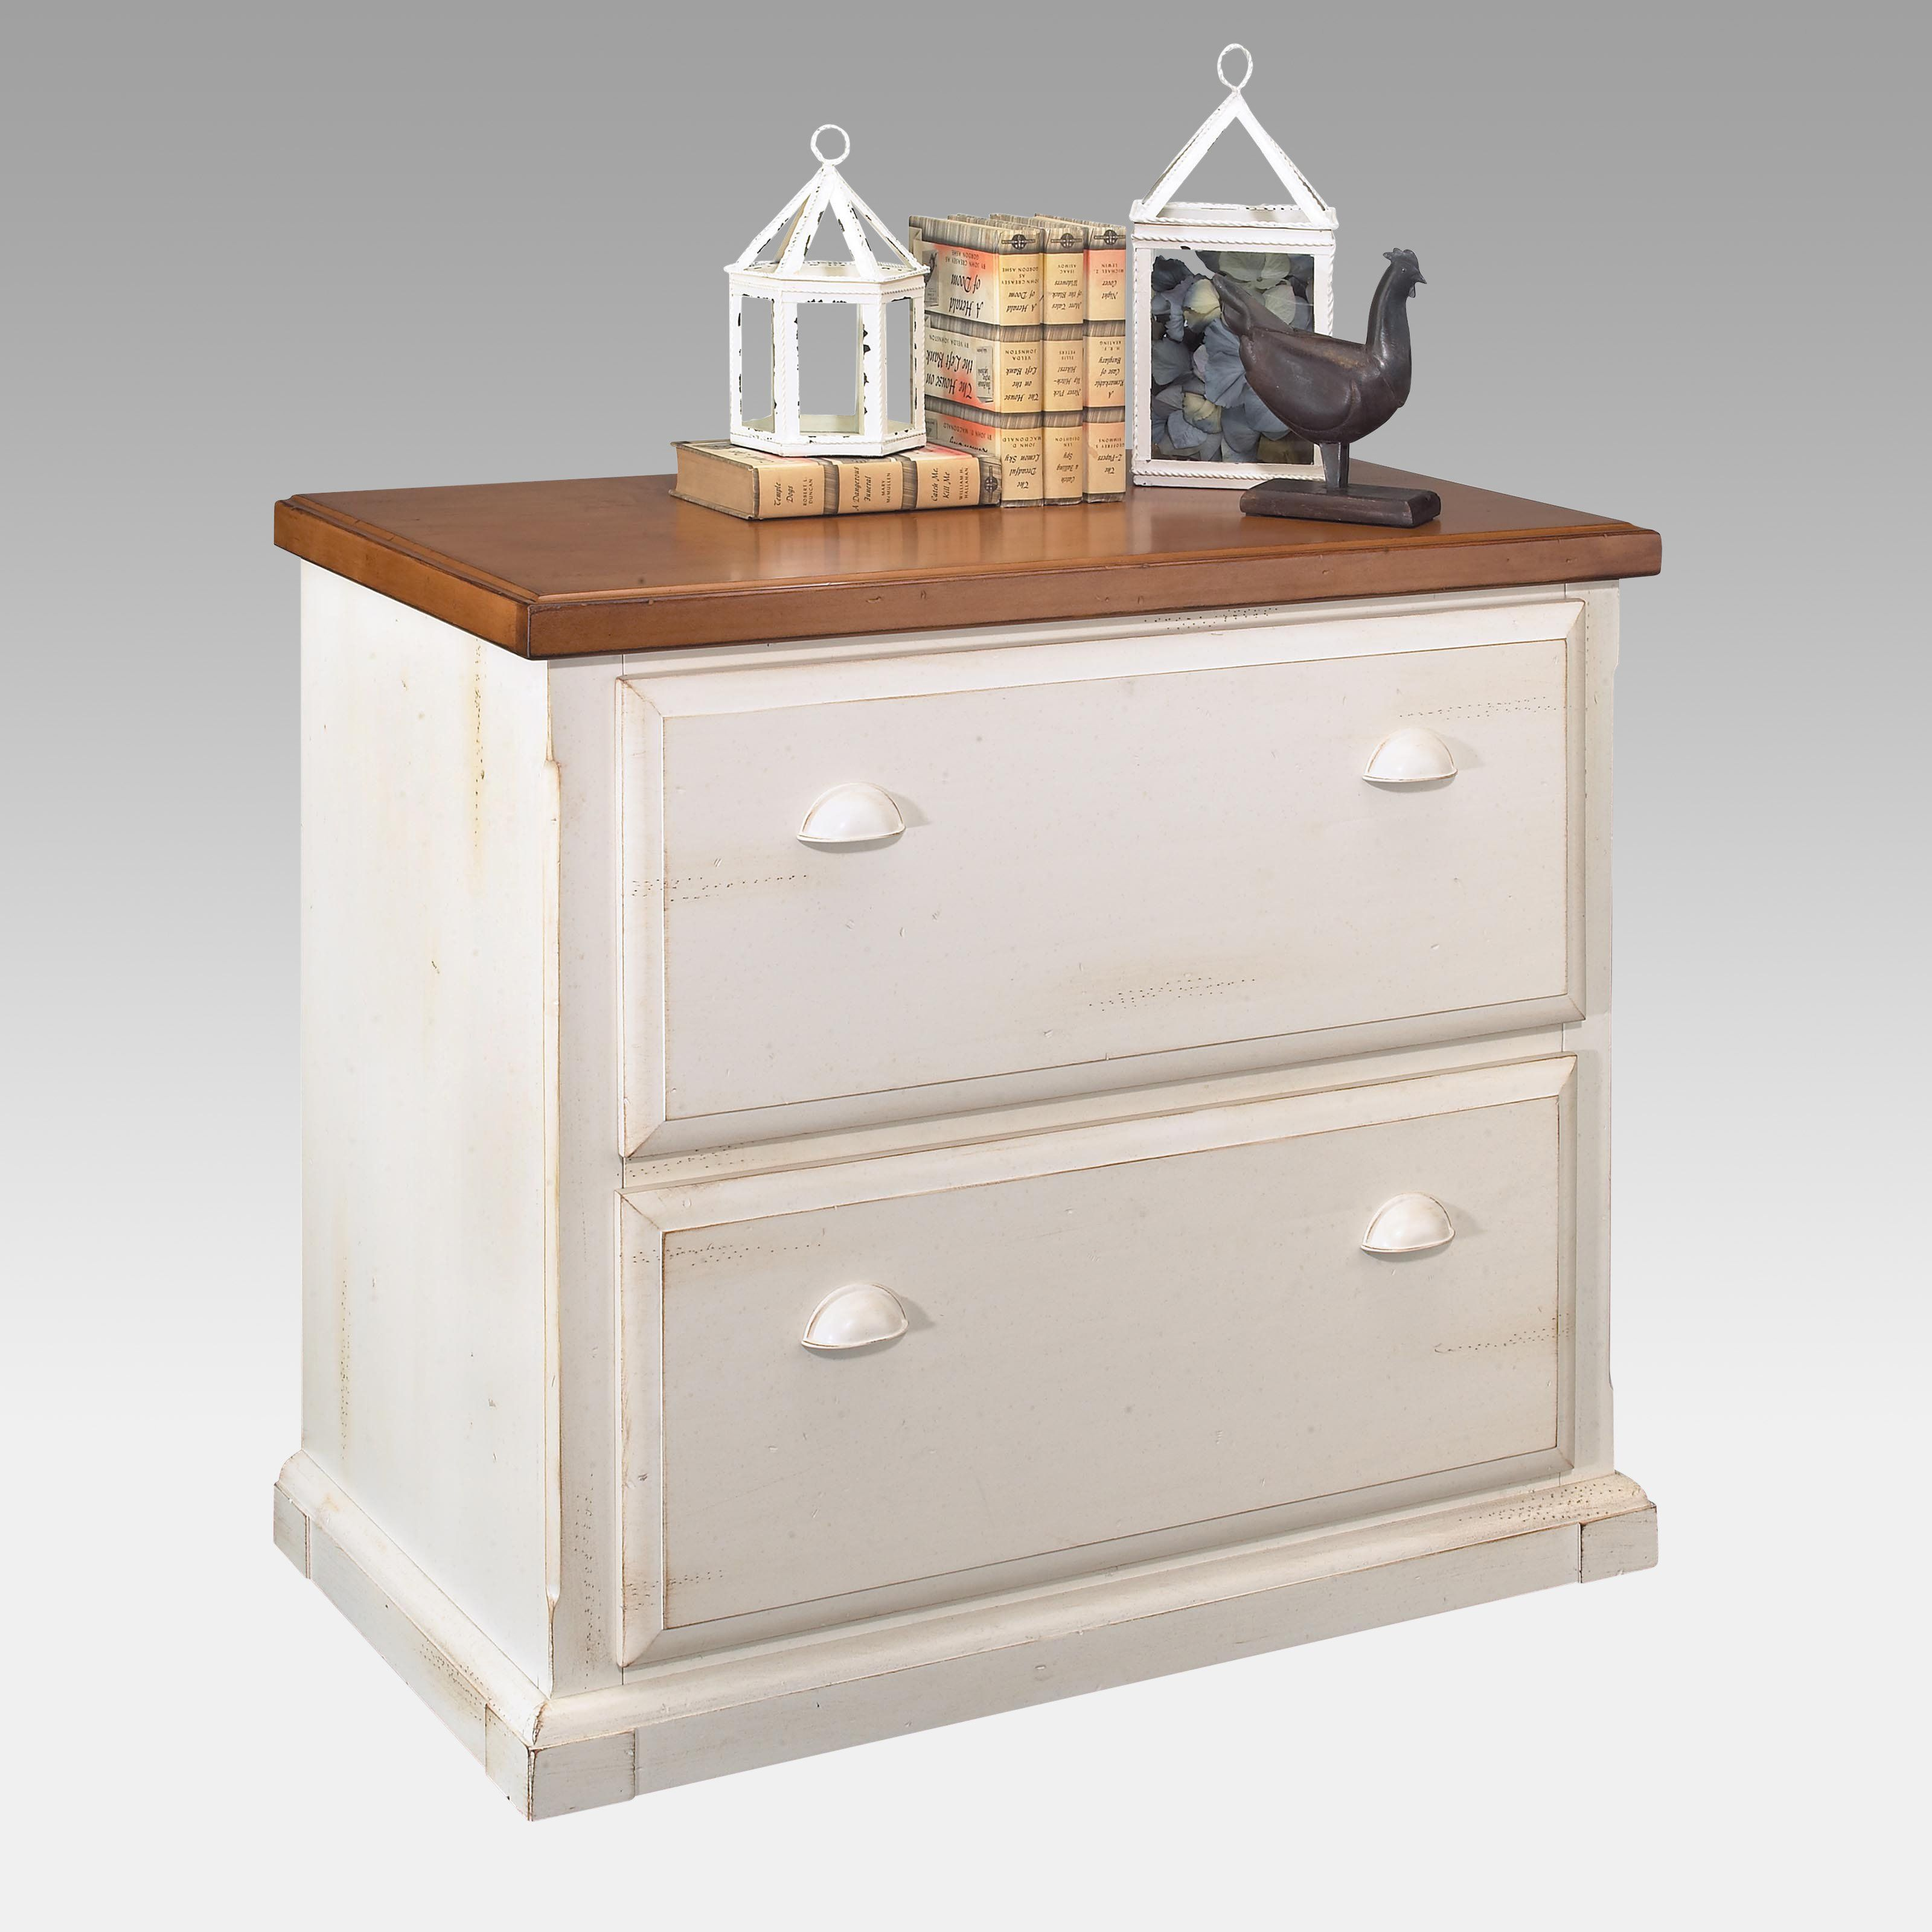 Southampton 2 Drawer Lateral Filing Cabinet By Kathy Ireland   White $479.99